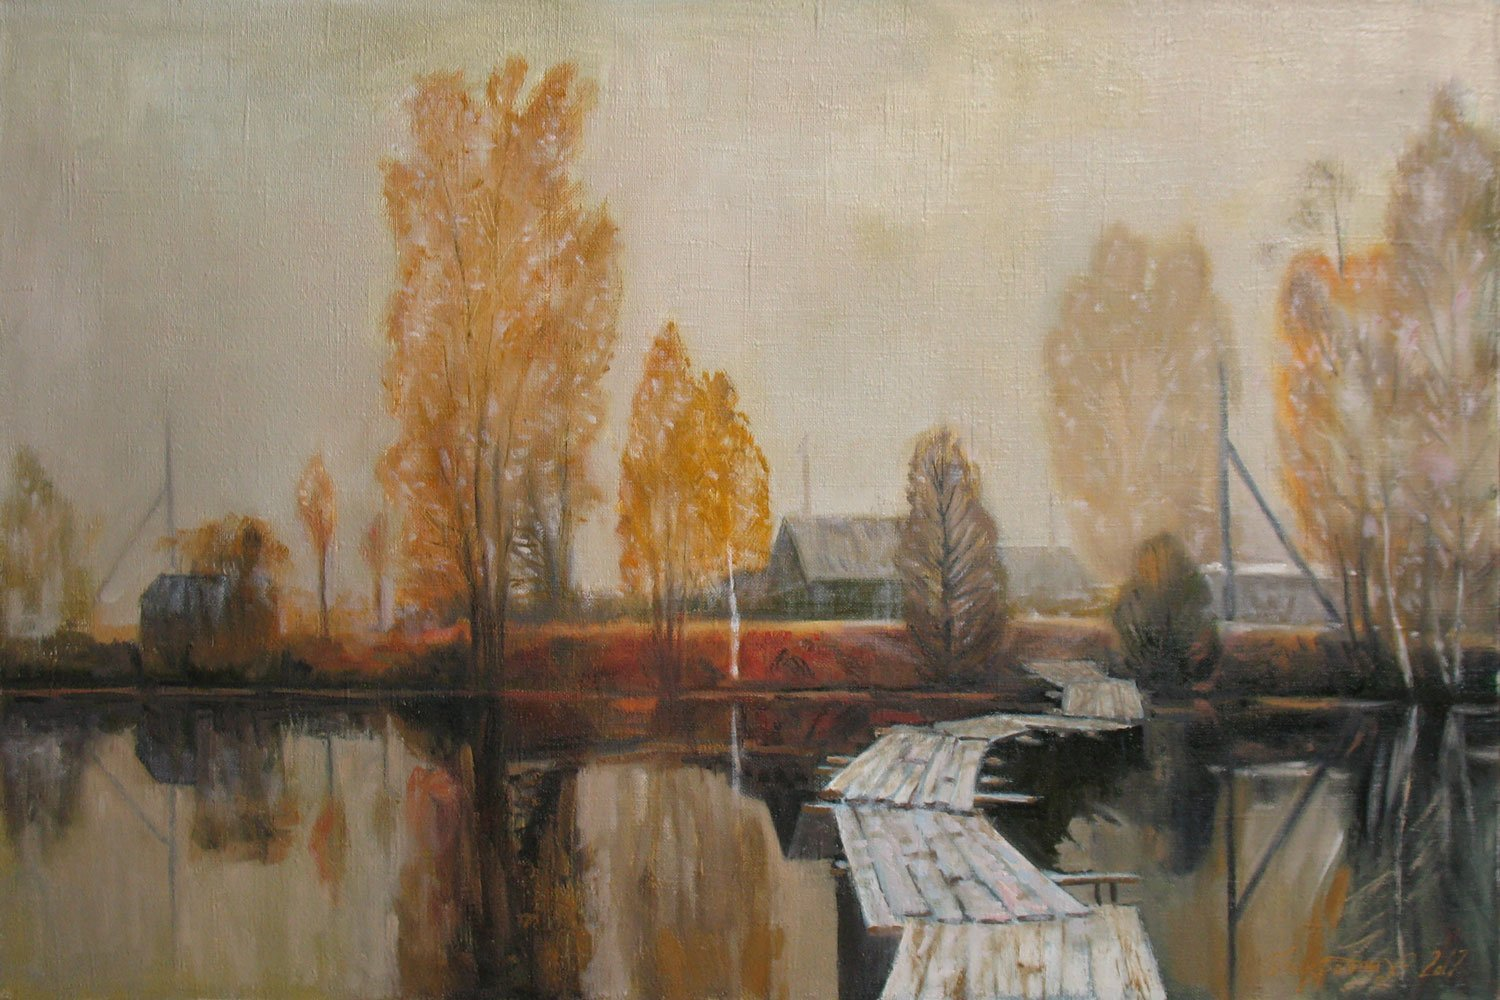 Alexander Bezrodnykh; Morning Misty, 2017, Original Painting Oil, 75 x 50 cm. Artwork description: 241 Morning, misty, river, bridg, ...